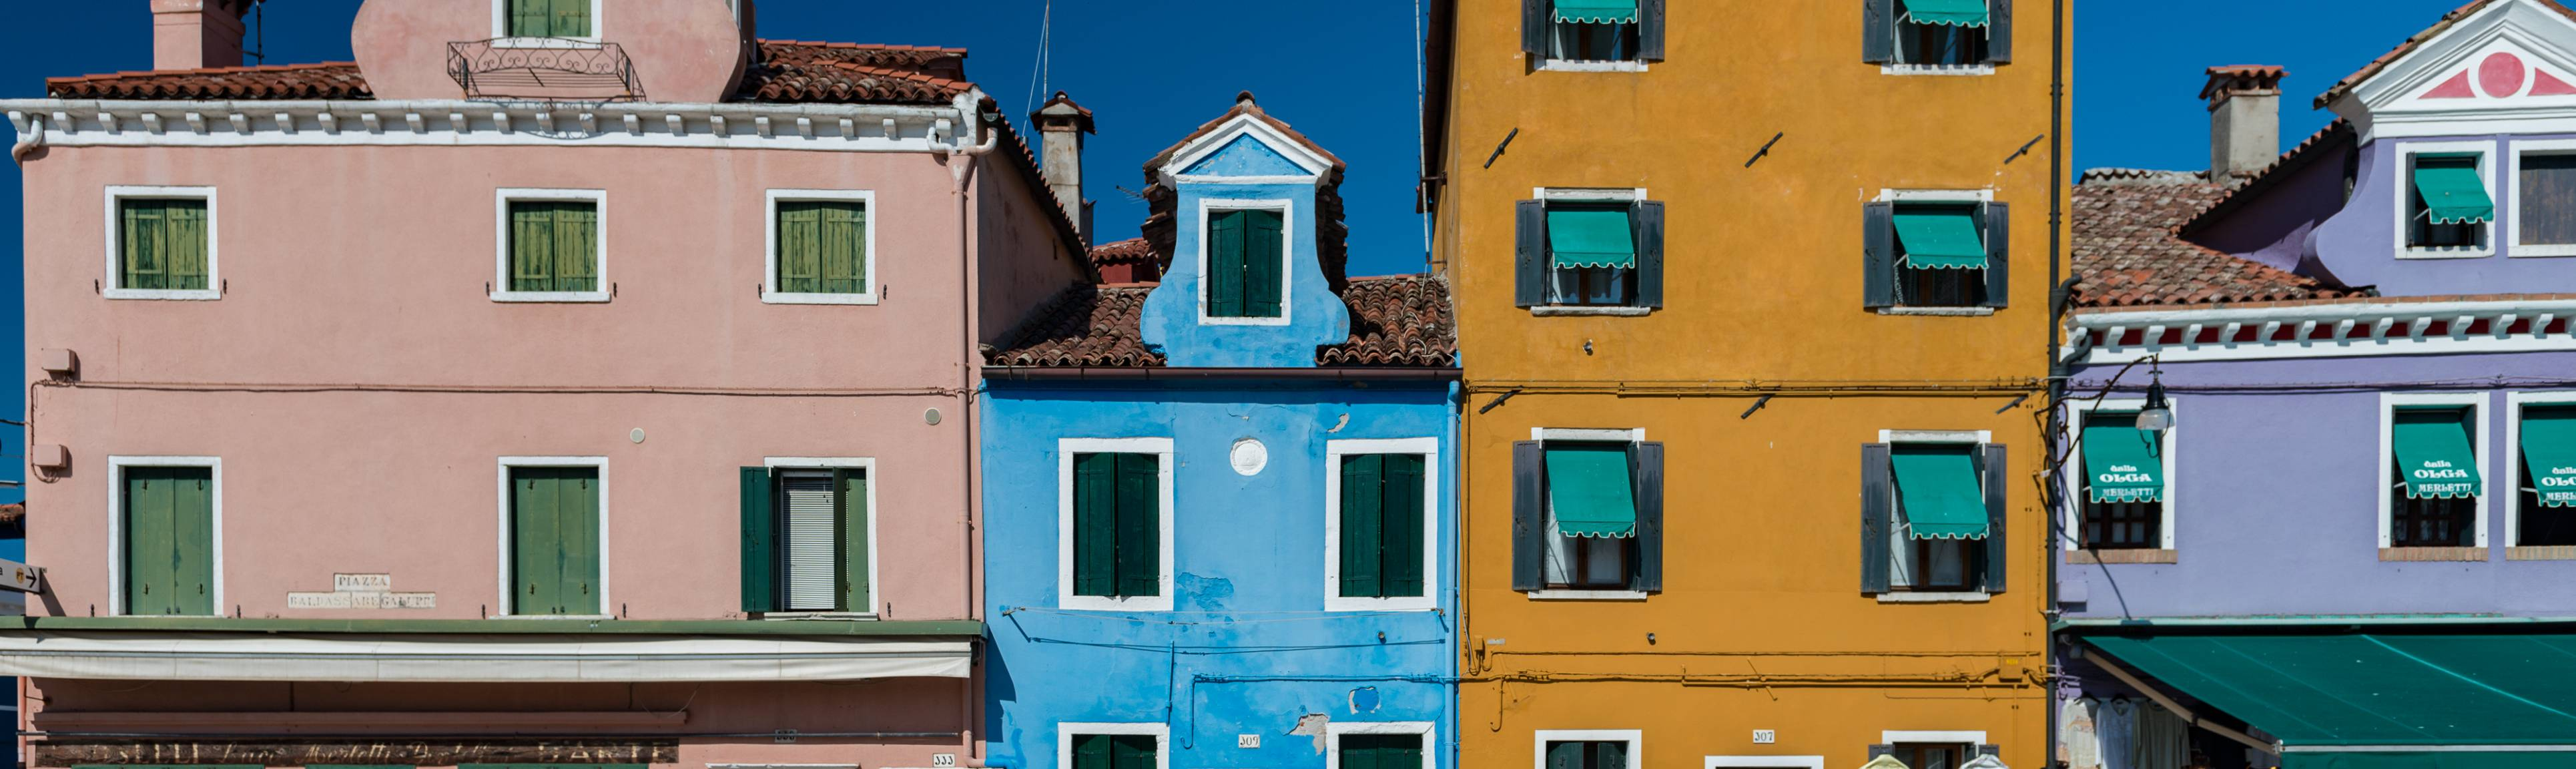 Colorful row of buildings in Burano, Italy